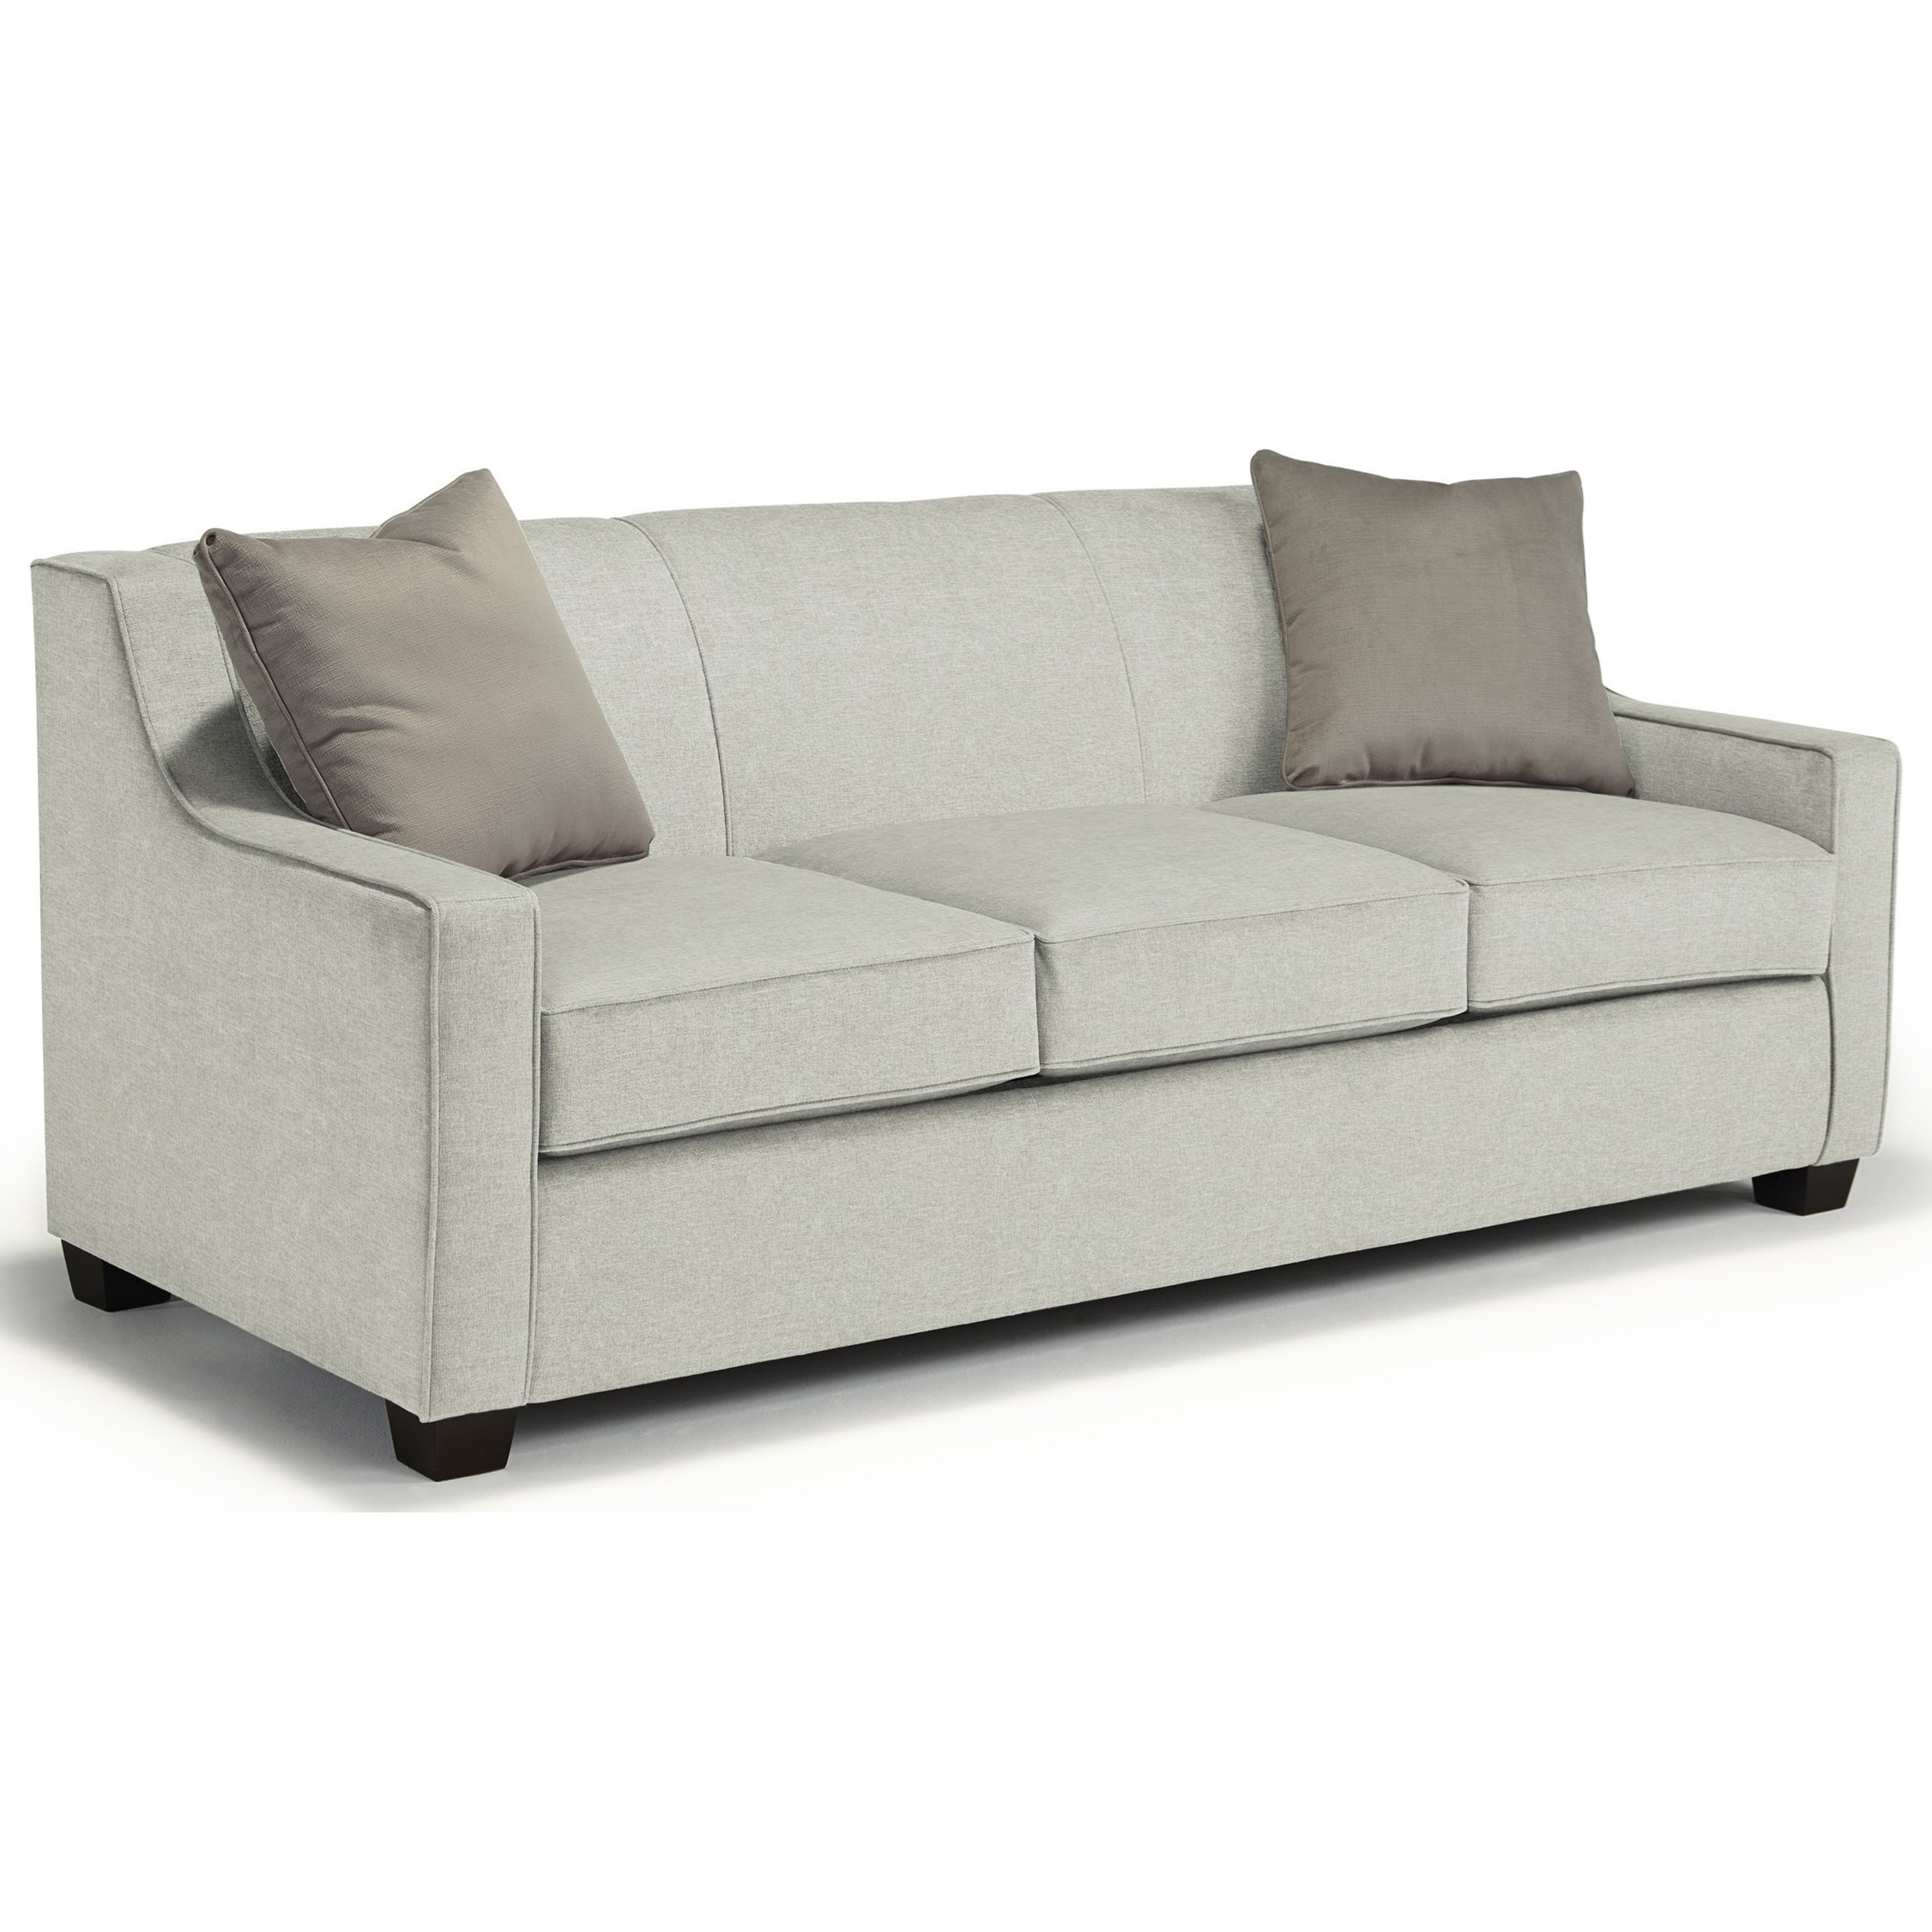 Marinette Queen Sleeper by Best Home Furnishings at Wilcox Furniture